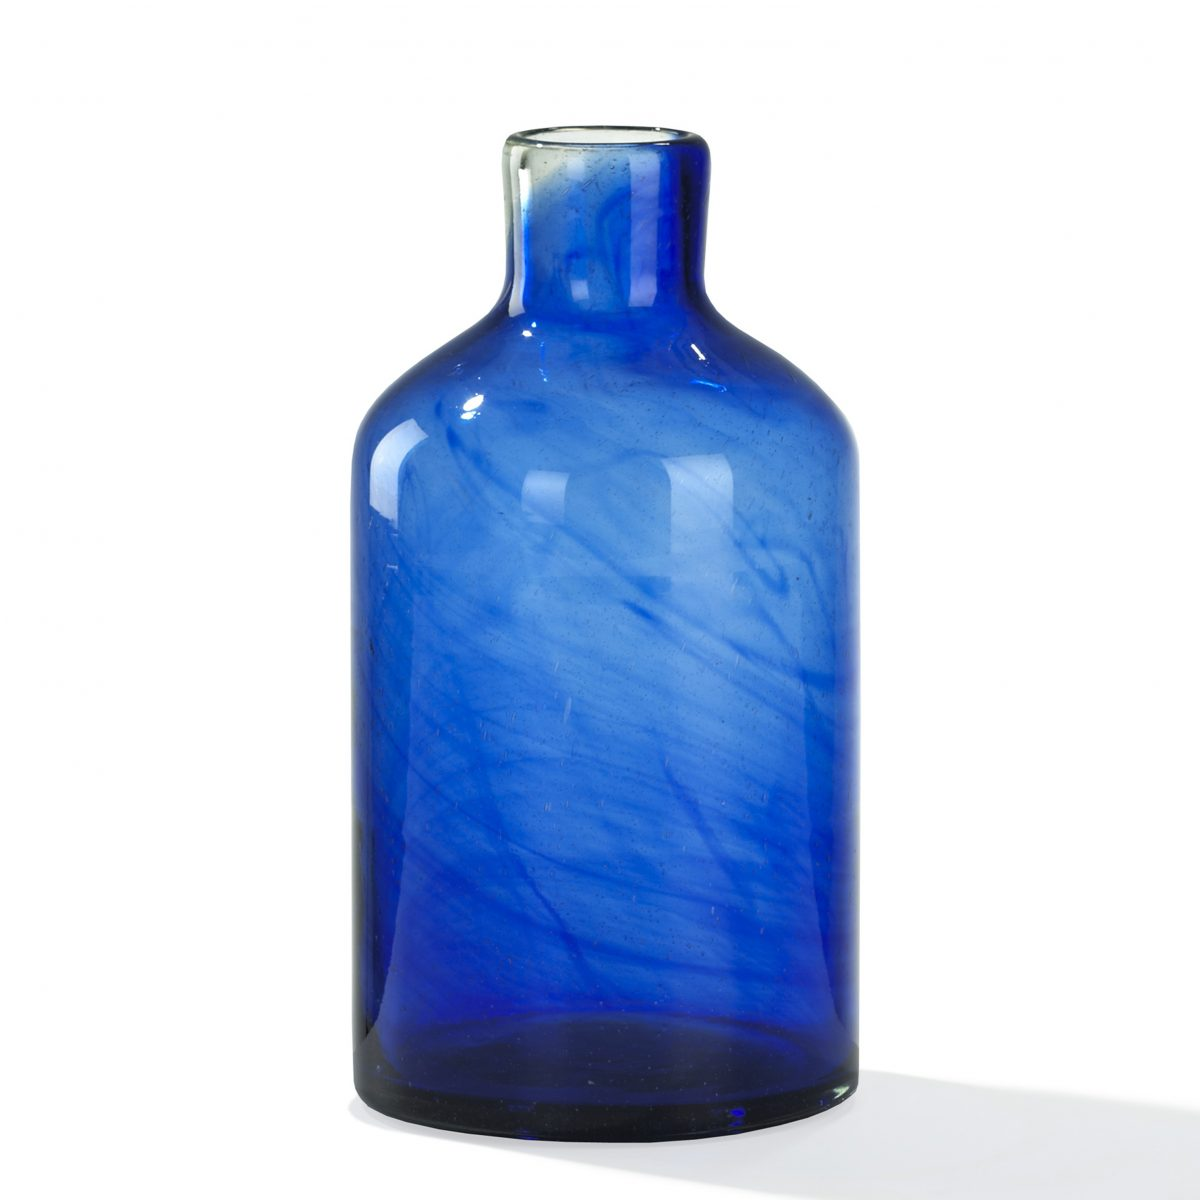 Cantel Vase 30 first edition